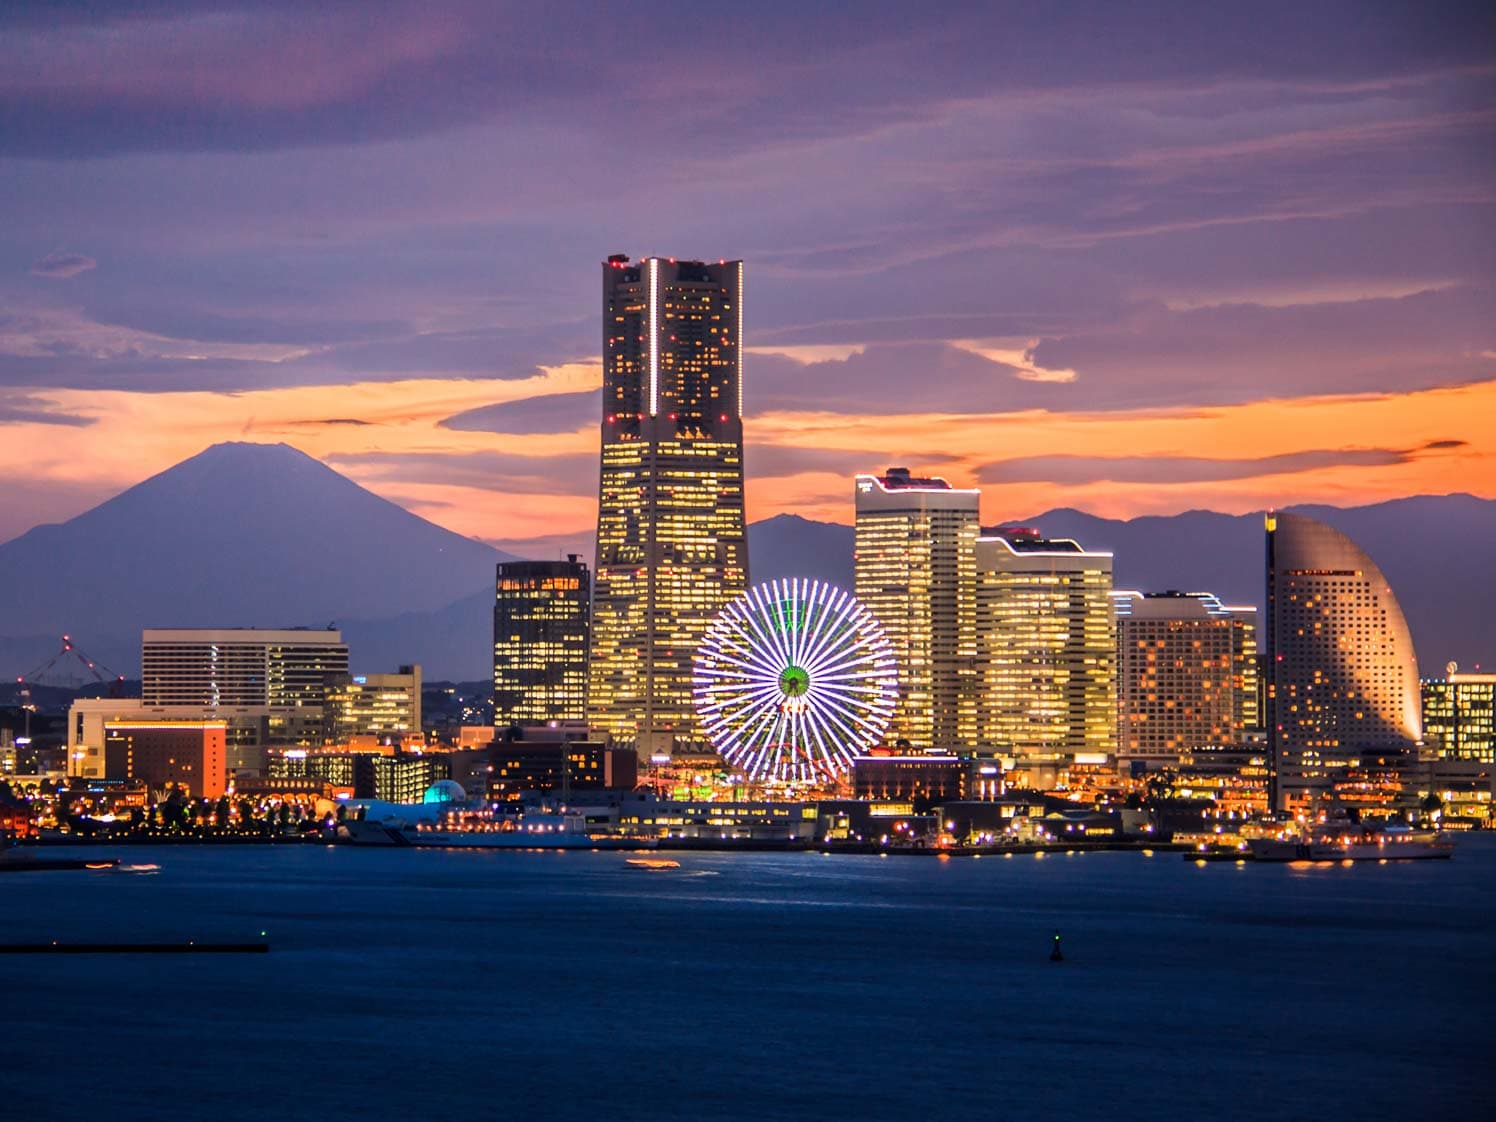 Skyline of Yokohama, Japan